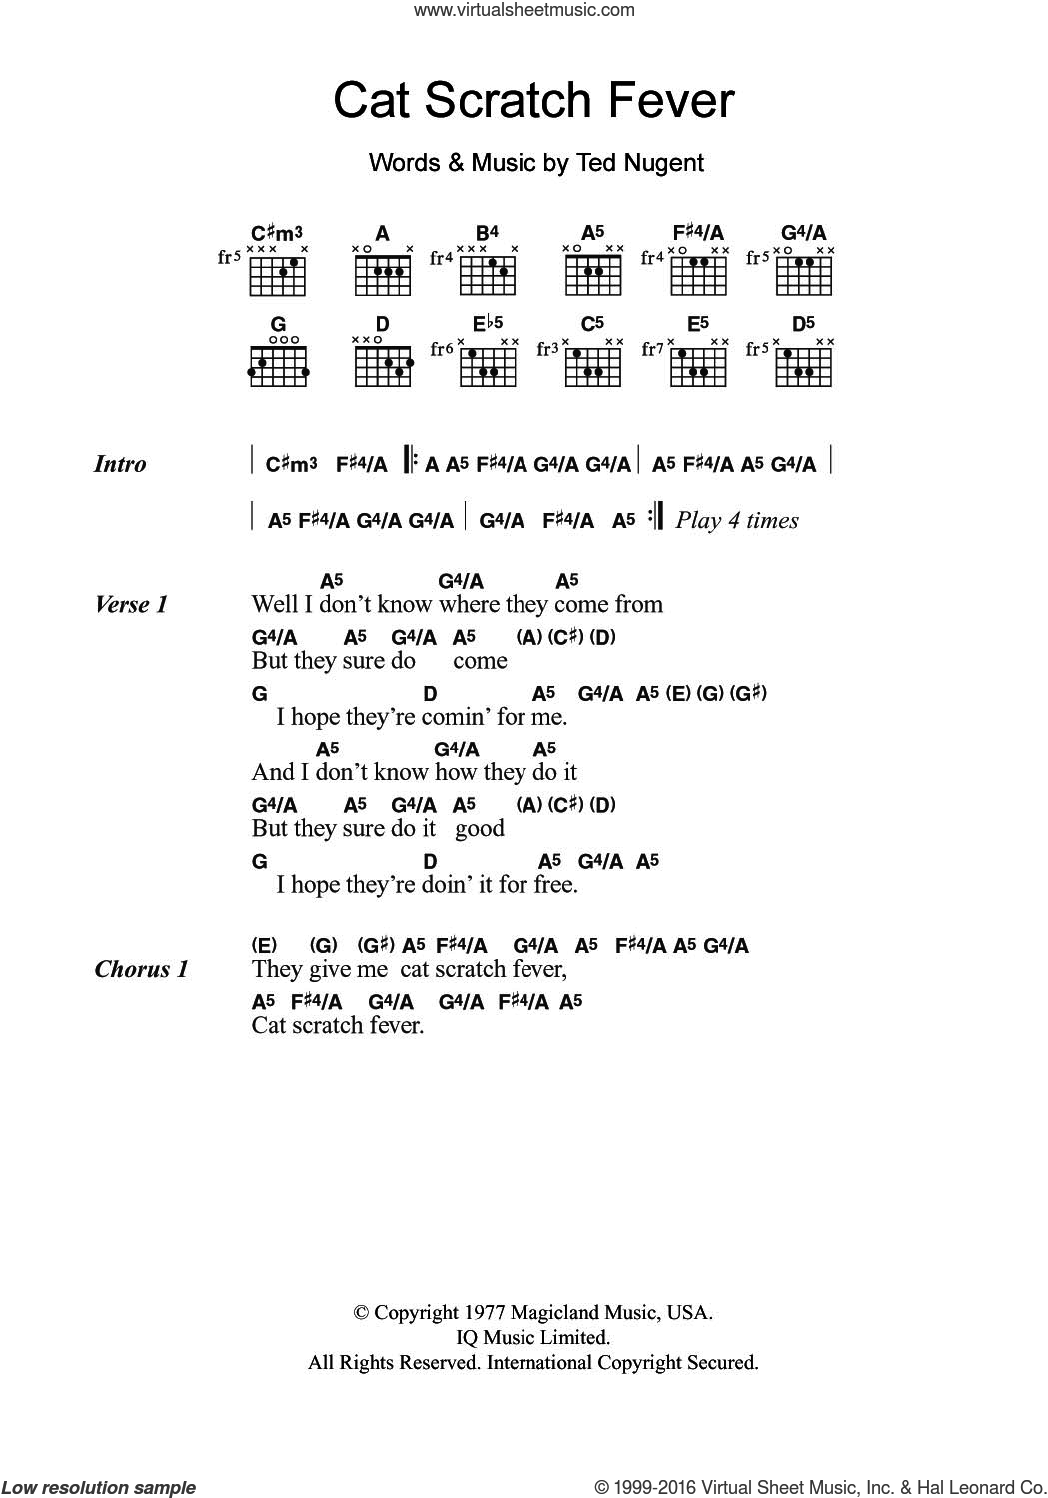 Cat Scratch Fever sheet music for guitar (chords) by Ted Nugent, intermediate skill level